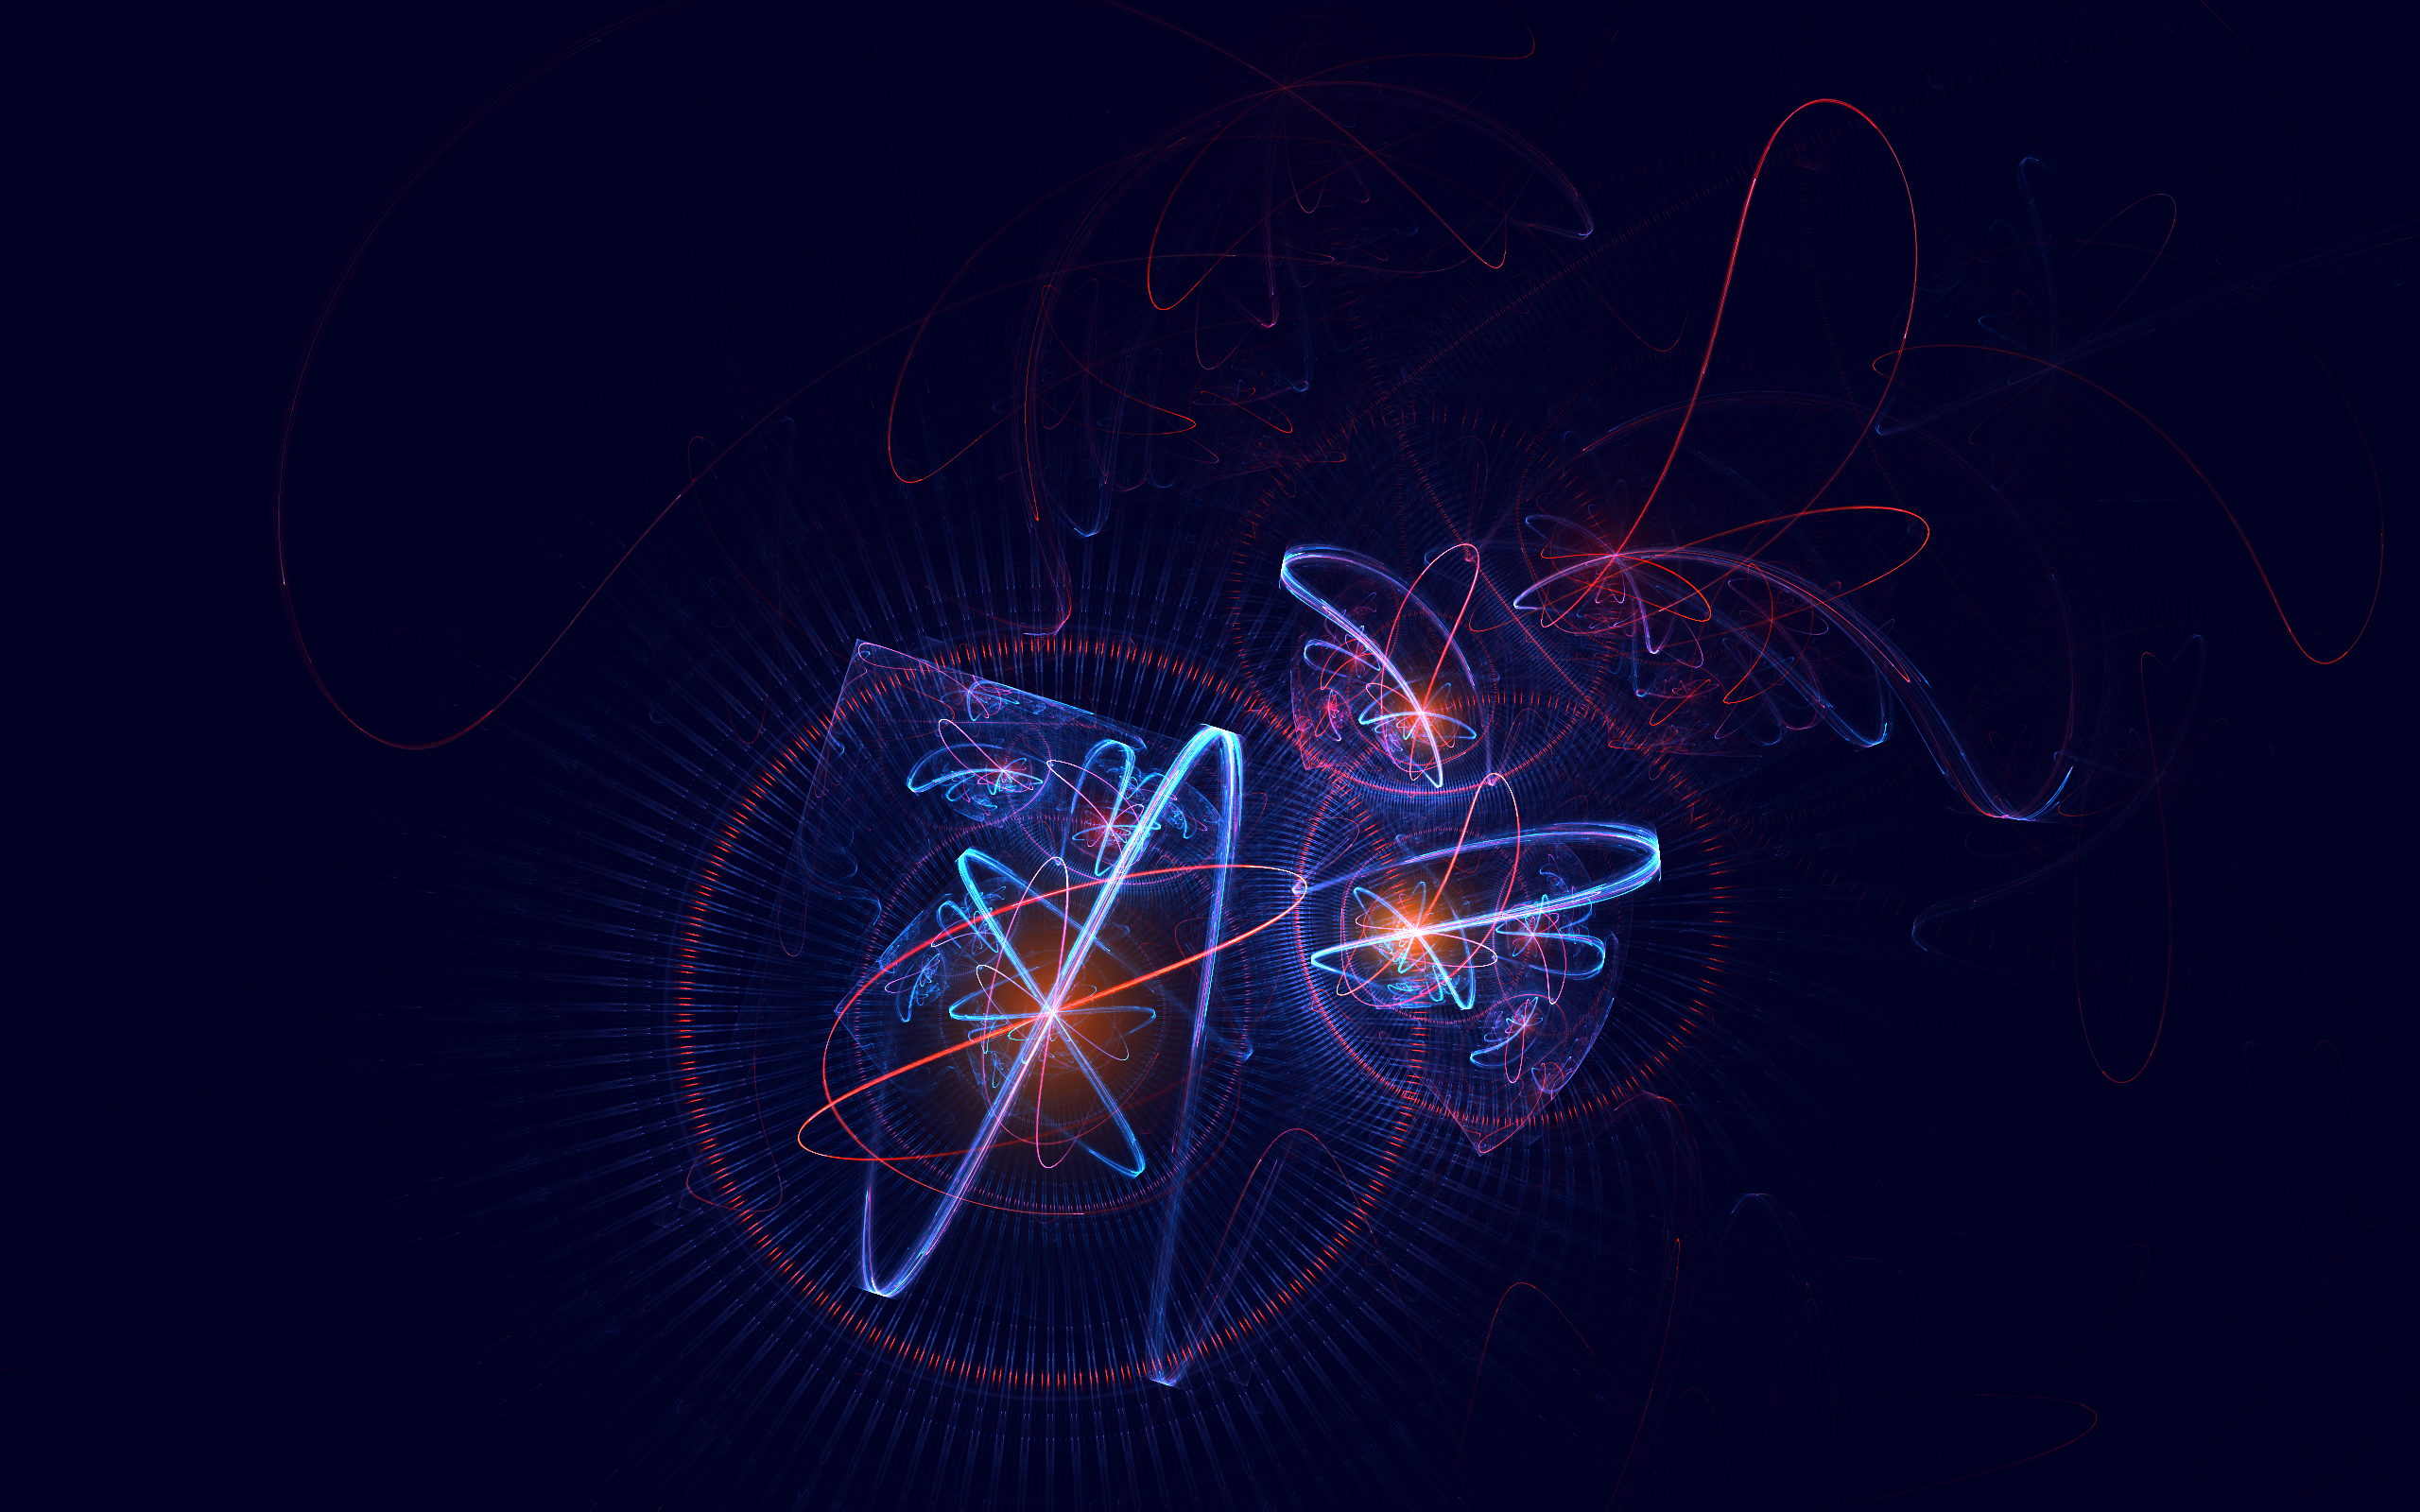 Atomic Hd WallpaperNuclear Atoms Wallpaper